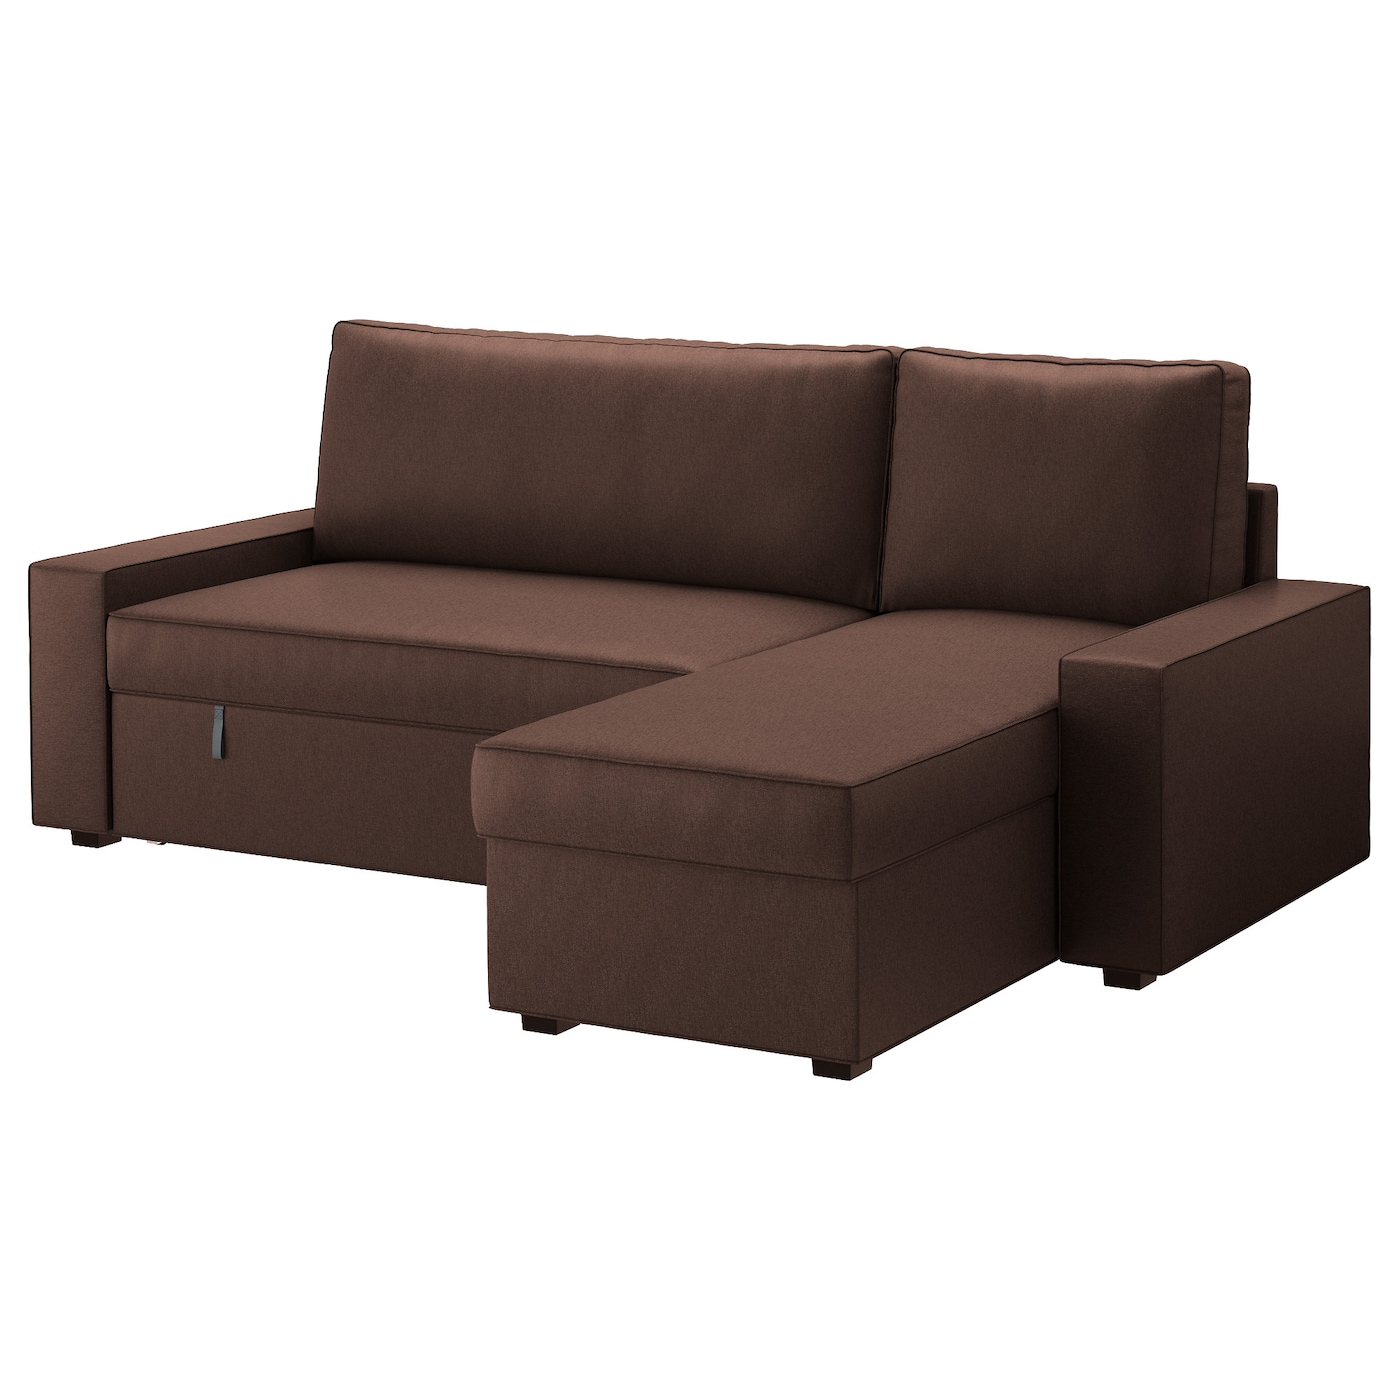 Vilasund sofa bed with chaise longue borred dark brown ikea for Chaise longue torino